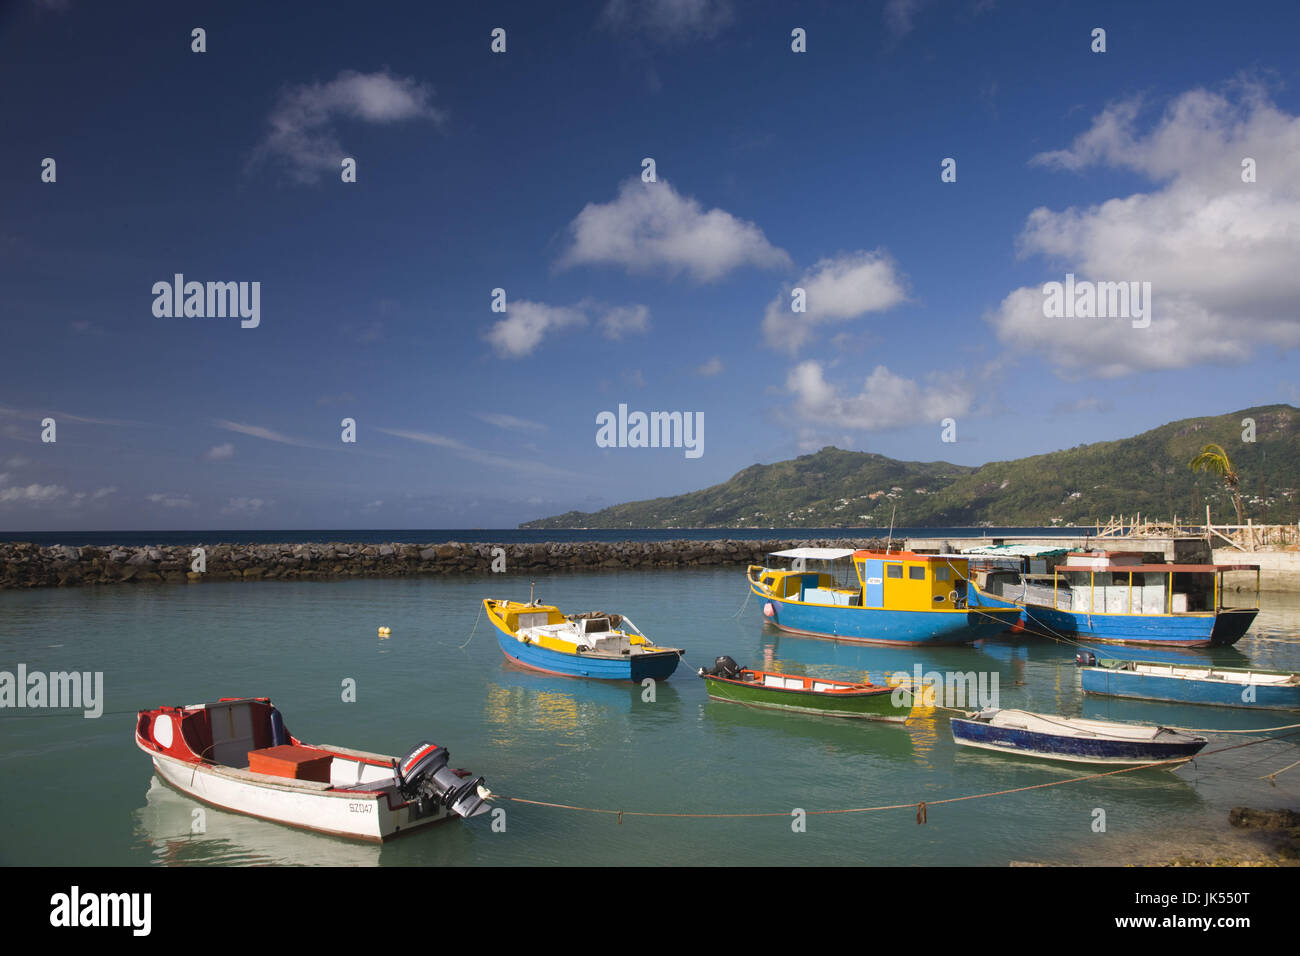 Seychelles, Mahe Island, Bel Ombre, town pier - Stock Image